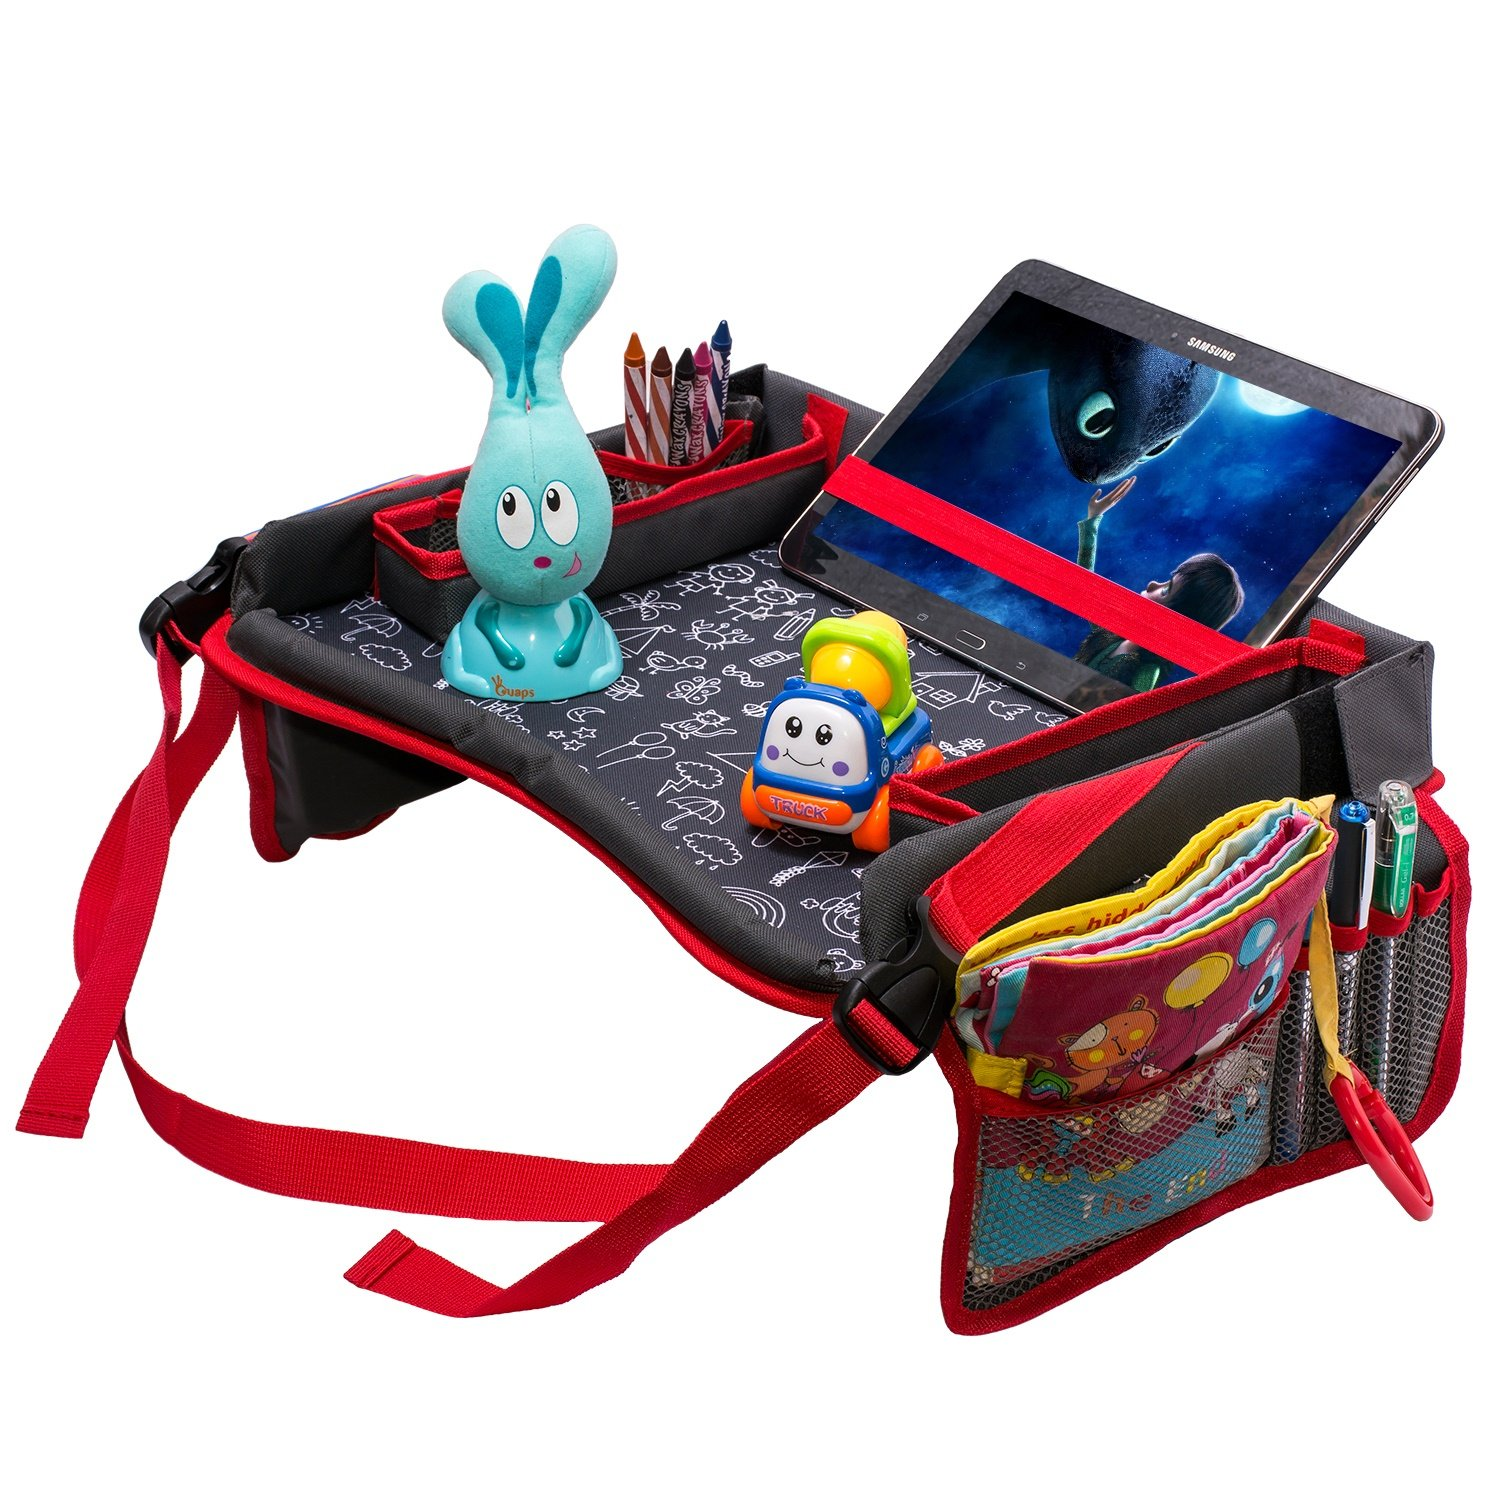 DMoose Toddler Car Seat Travel Tray (16'' x 12'') – Toy Organizer, Tablet Holder, Reinforced Surface, Sturdy Base & Side Walls, Strong Buckles, Crayon Organizer, Mesh Pockets – Waterproof